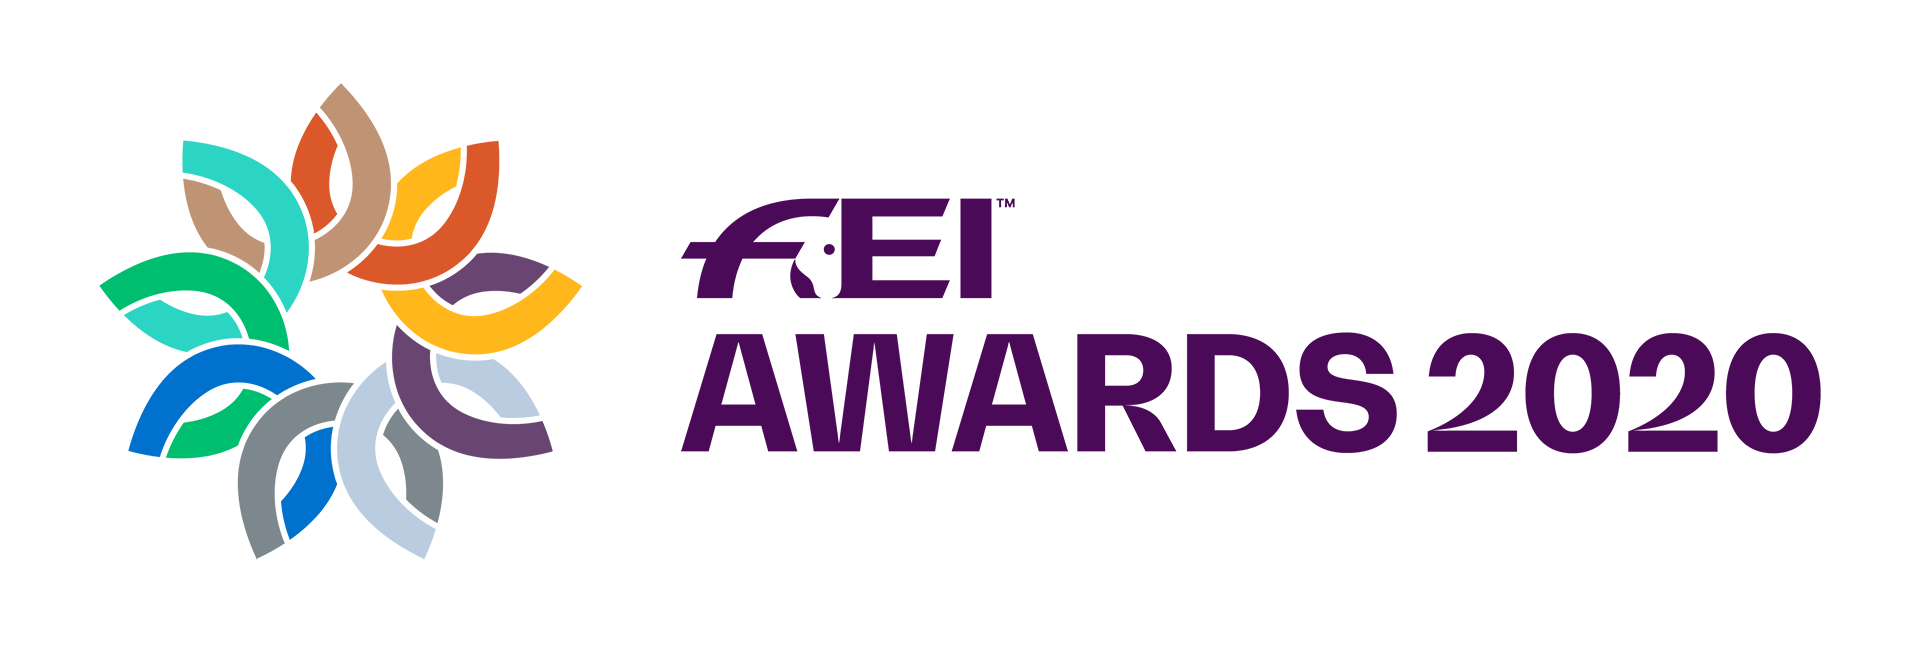 The FEI Awards will celebrate athletes from the last decade this year ©FEI